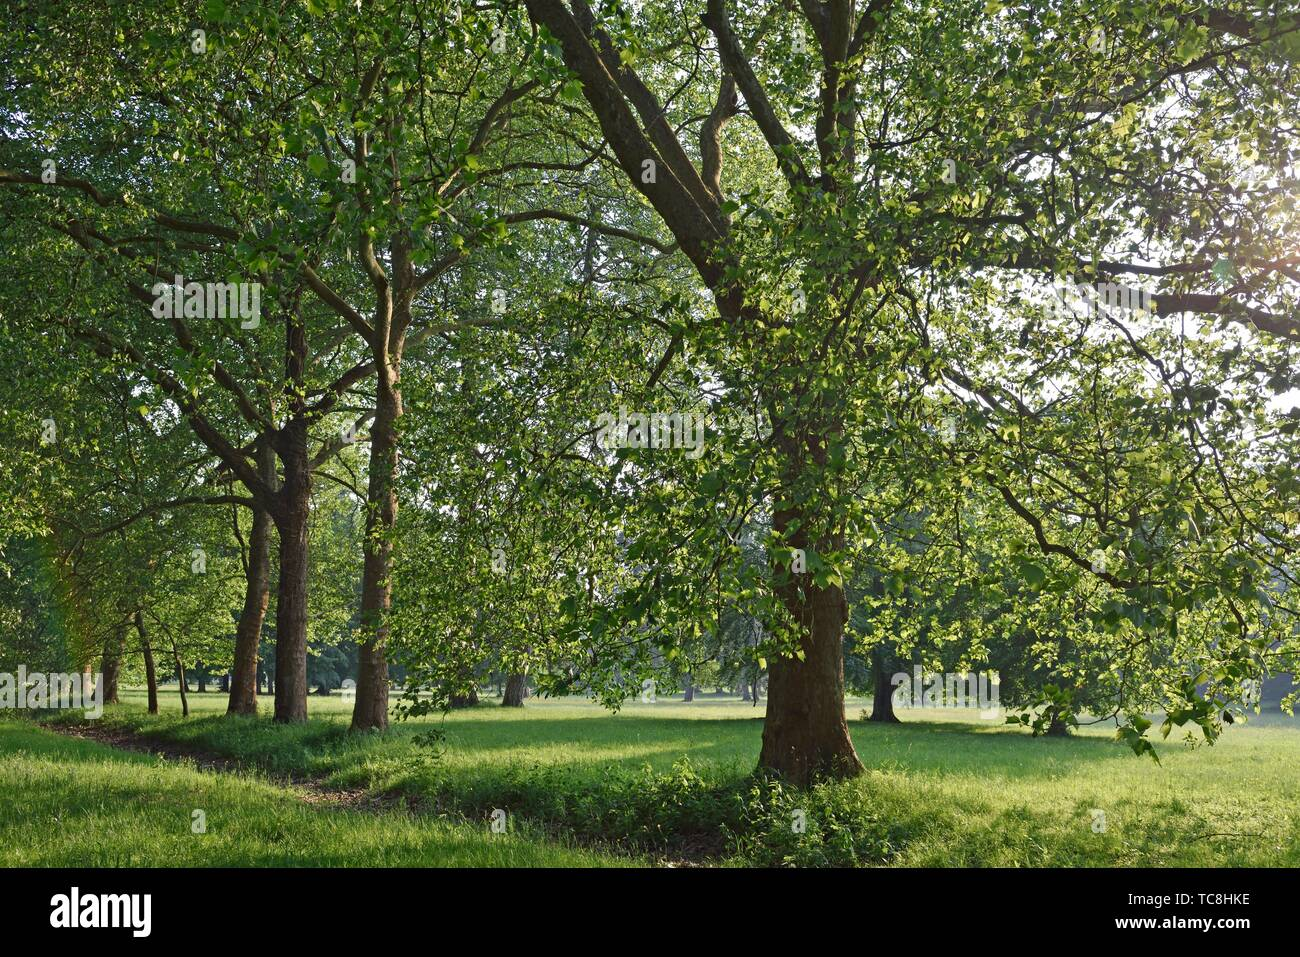 horse-chestnut or conker tree s (Aesculus hippocastanum) in the Park of the Chateau of Rambouillet, Forest of Rambouillet, Haute Vallee de Chevreuse - Stock Image